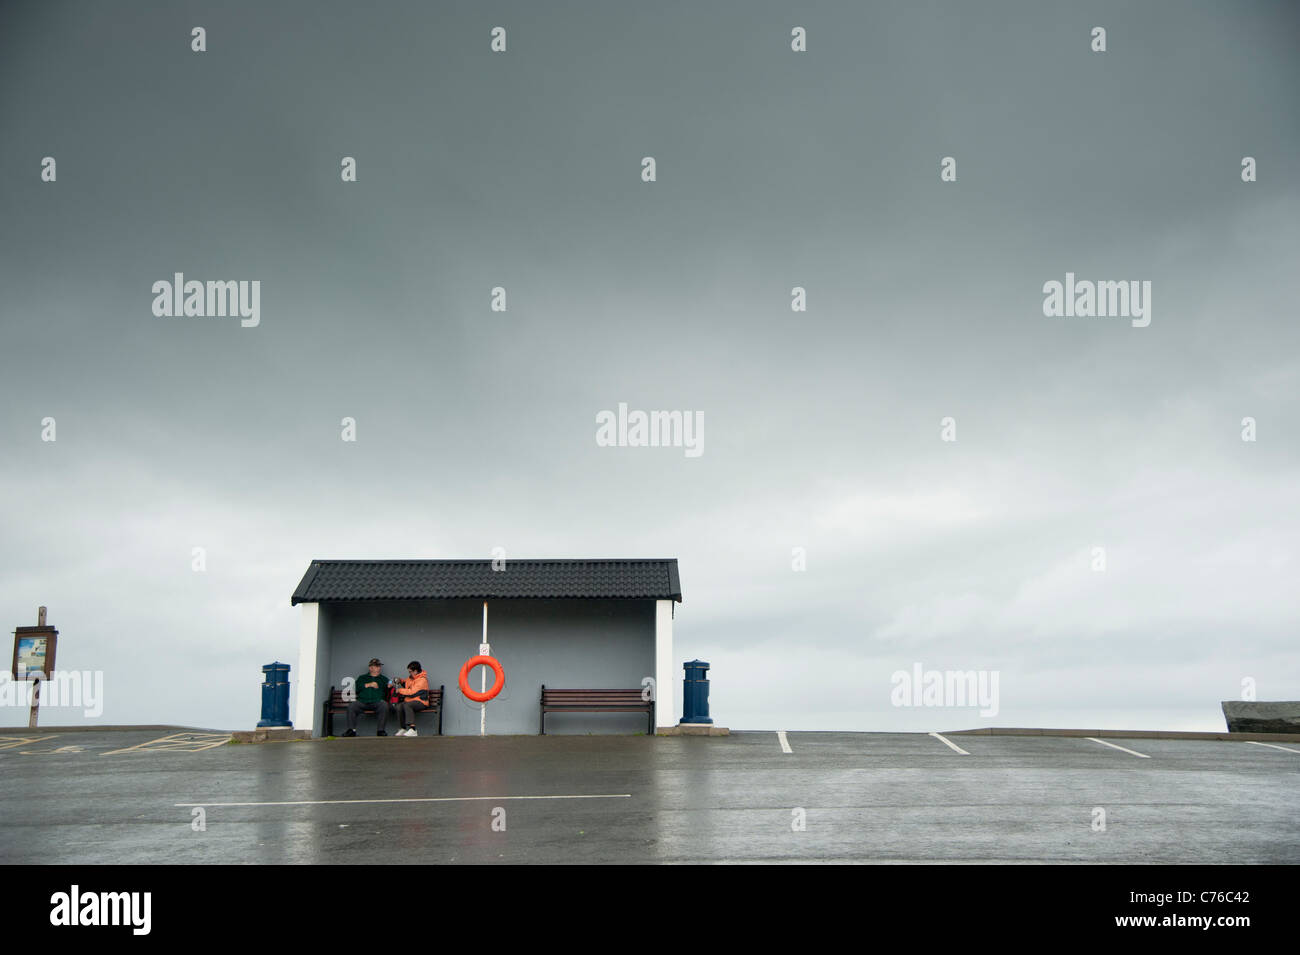 two people sheltering from the rain on a grey overcast rainy wet afternoon, Aberaeron Wales UK - Stock Image